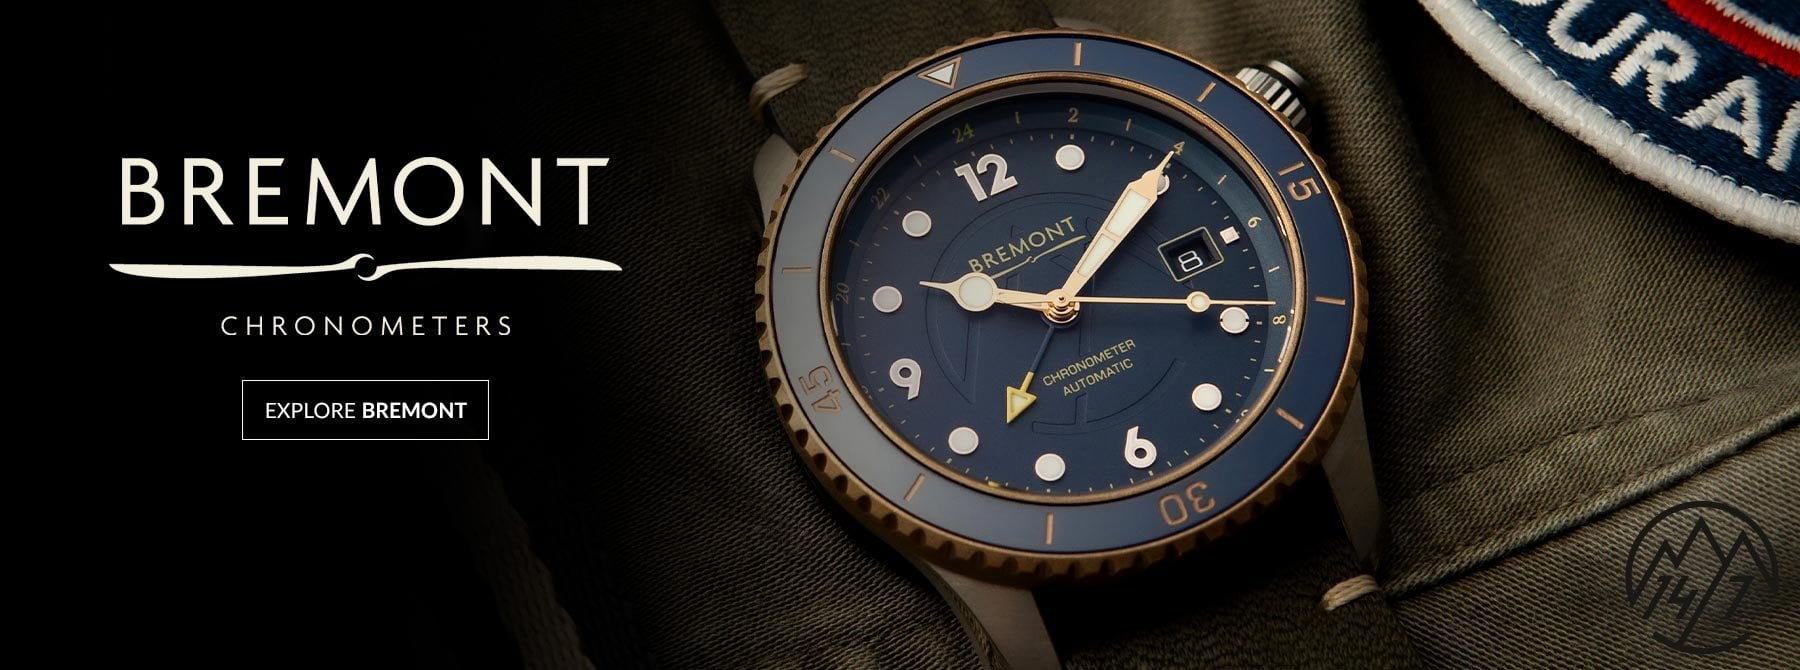 Bremont Watches - Explore the Collection